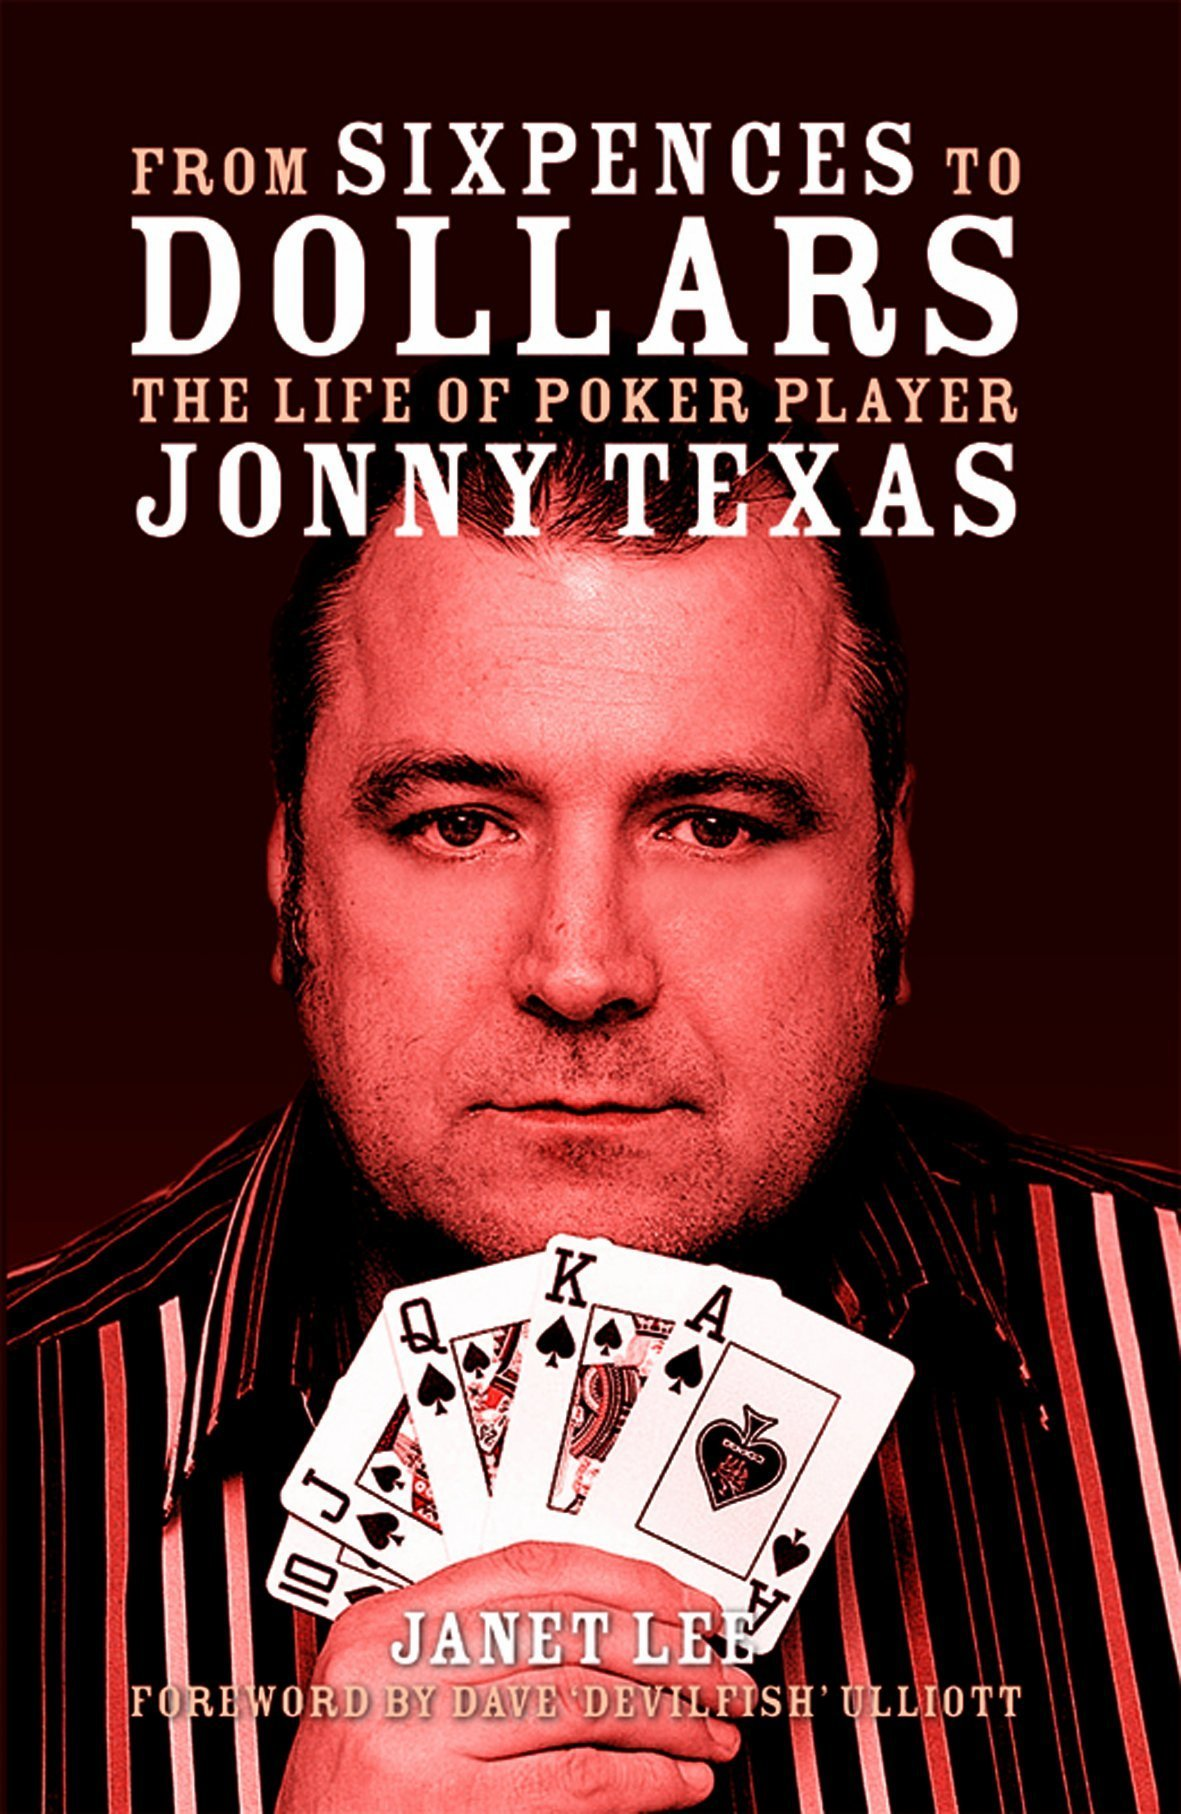 Download From Sixpences to Dollars: The Life of Poker Player Jonny Texas PDF